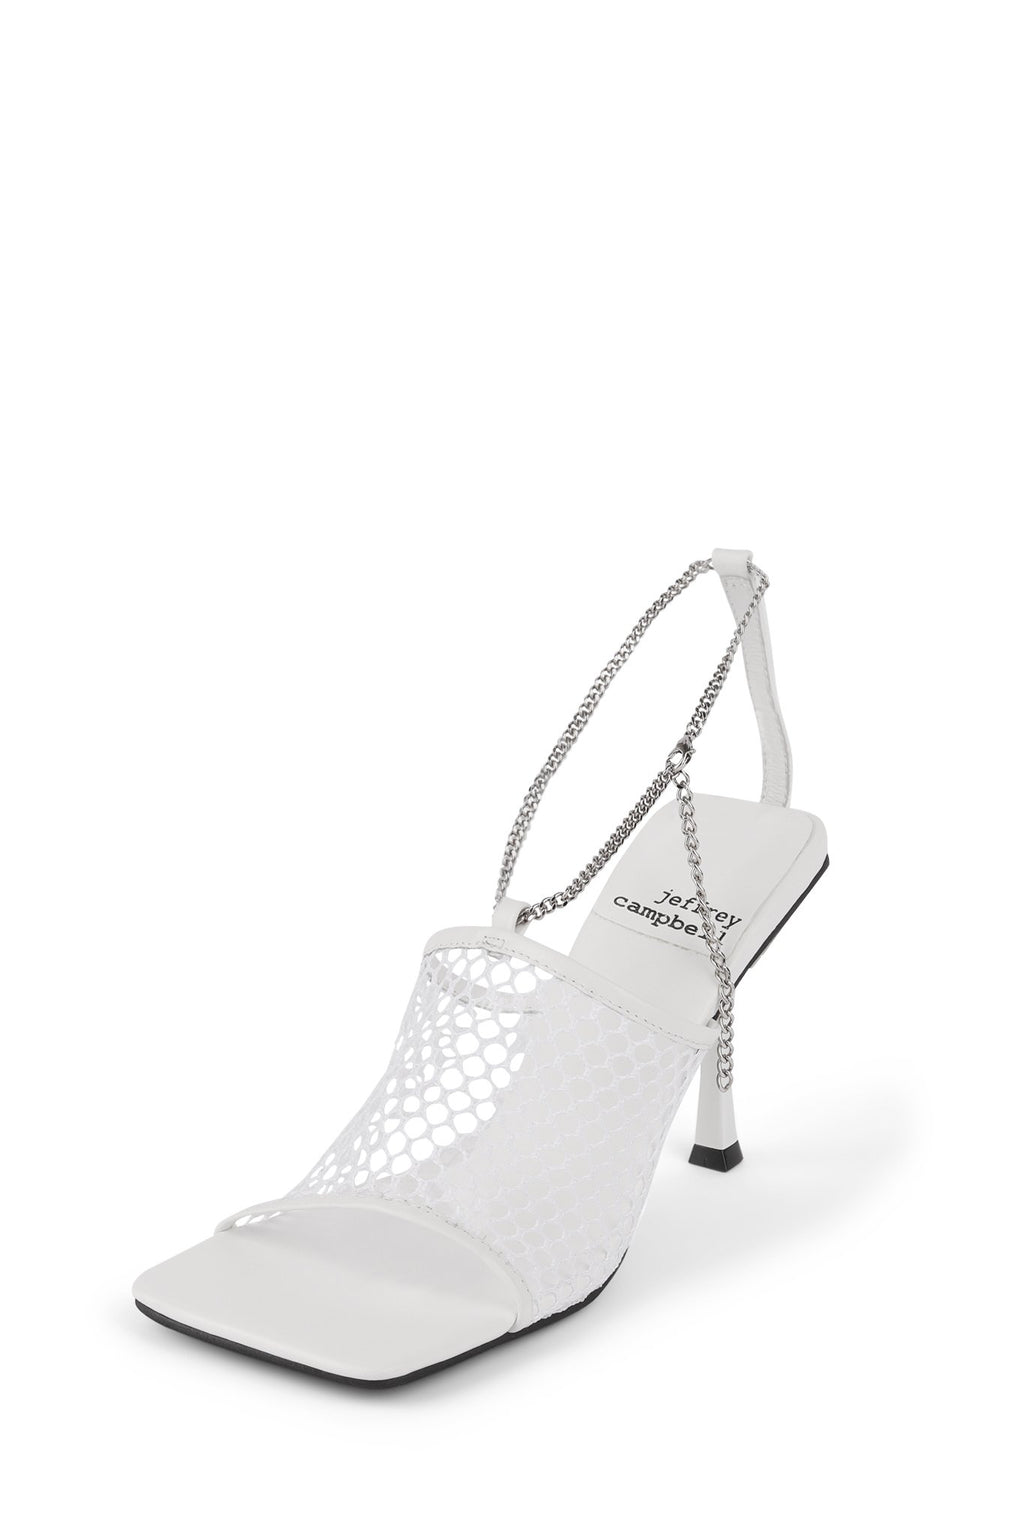 AMELINE-MS Heeled Sandal Jeffrey Campbell